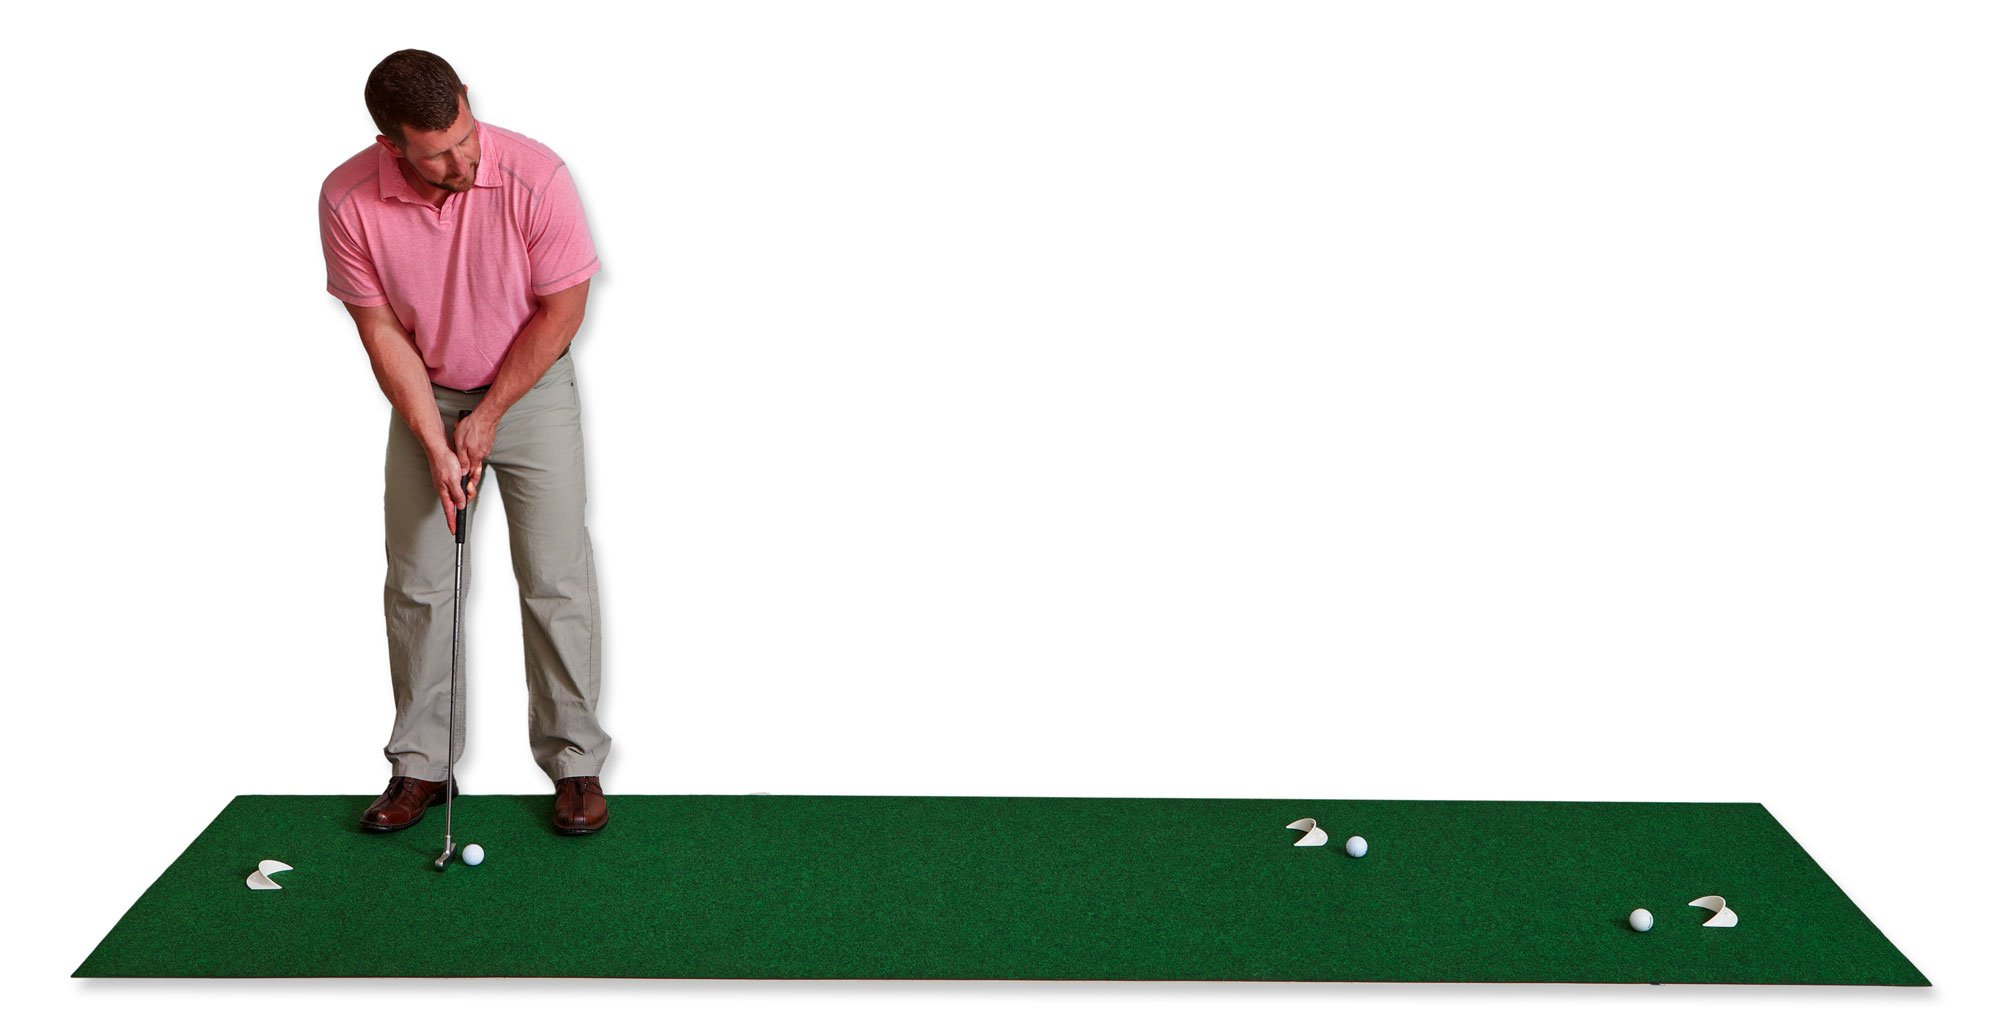 Putt-A-Bout Golf Putting Mat, 3 x 11-Feet, Green by Putt-A-Bout